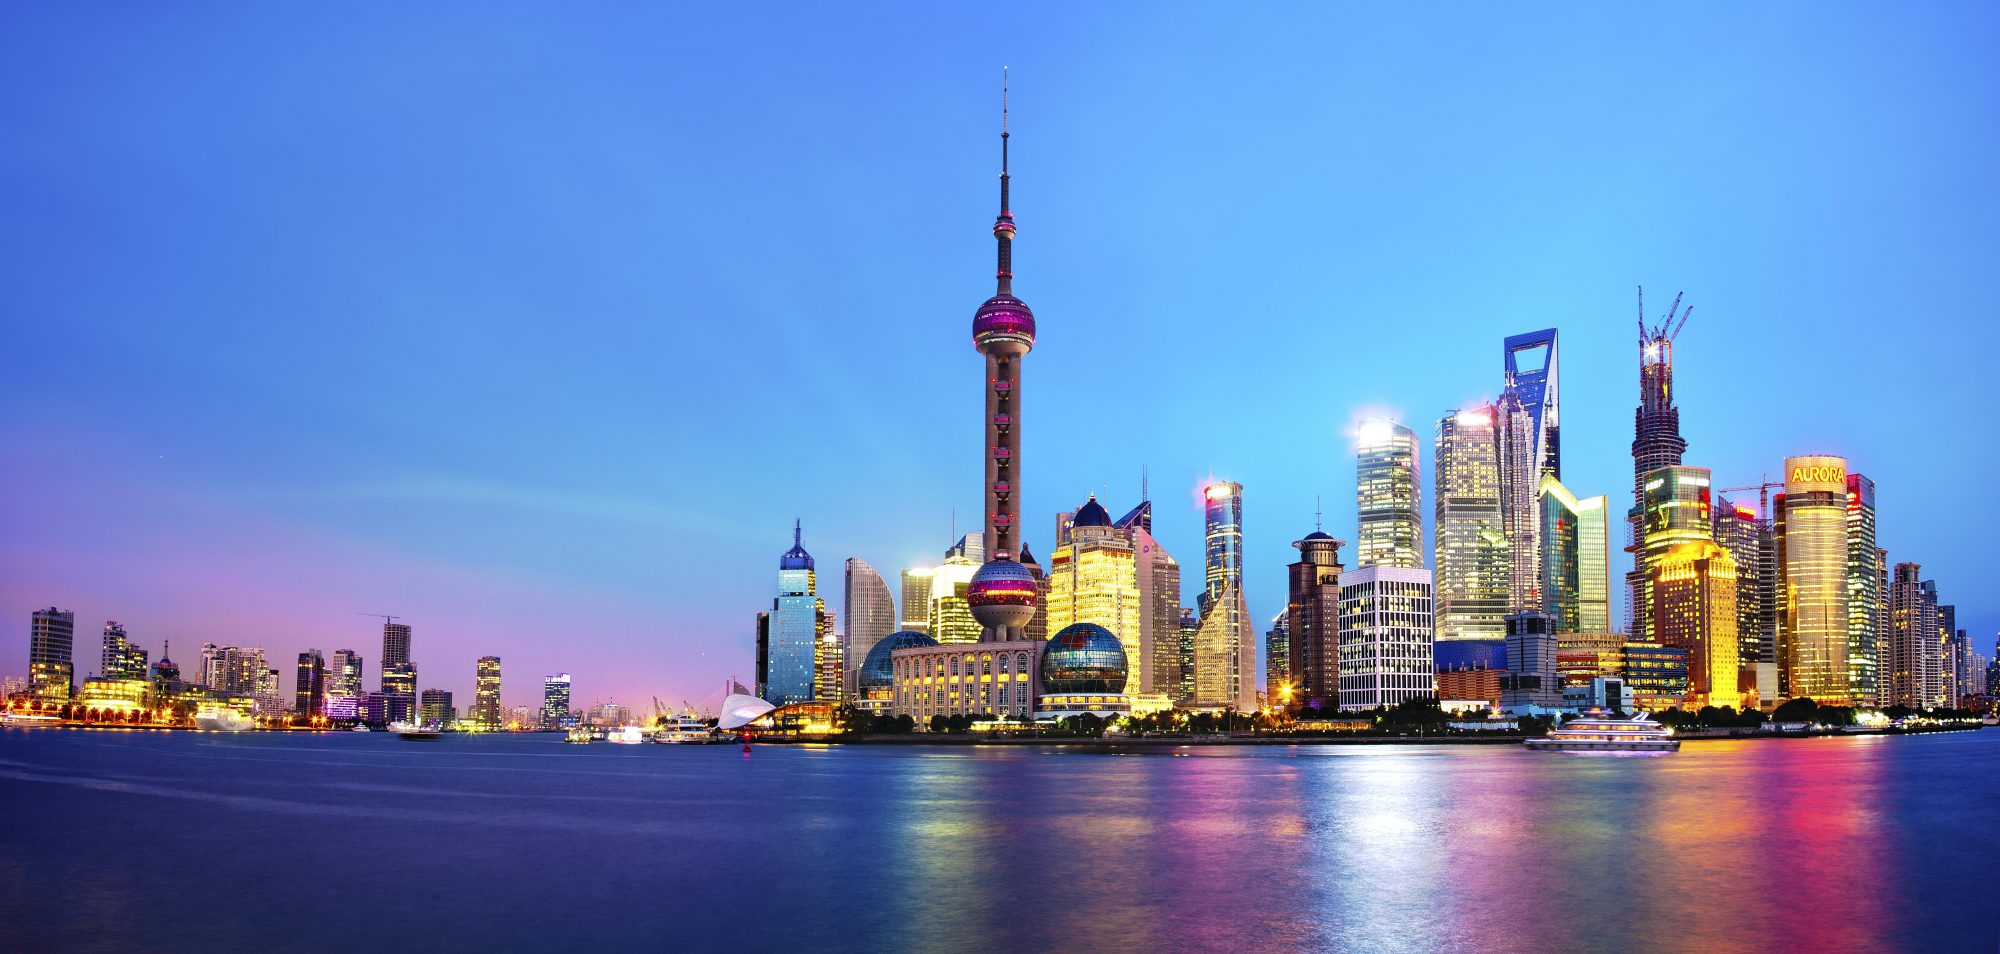 Shanghai most visited cities